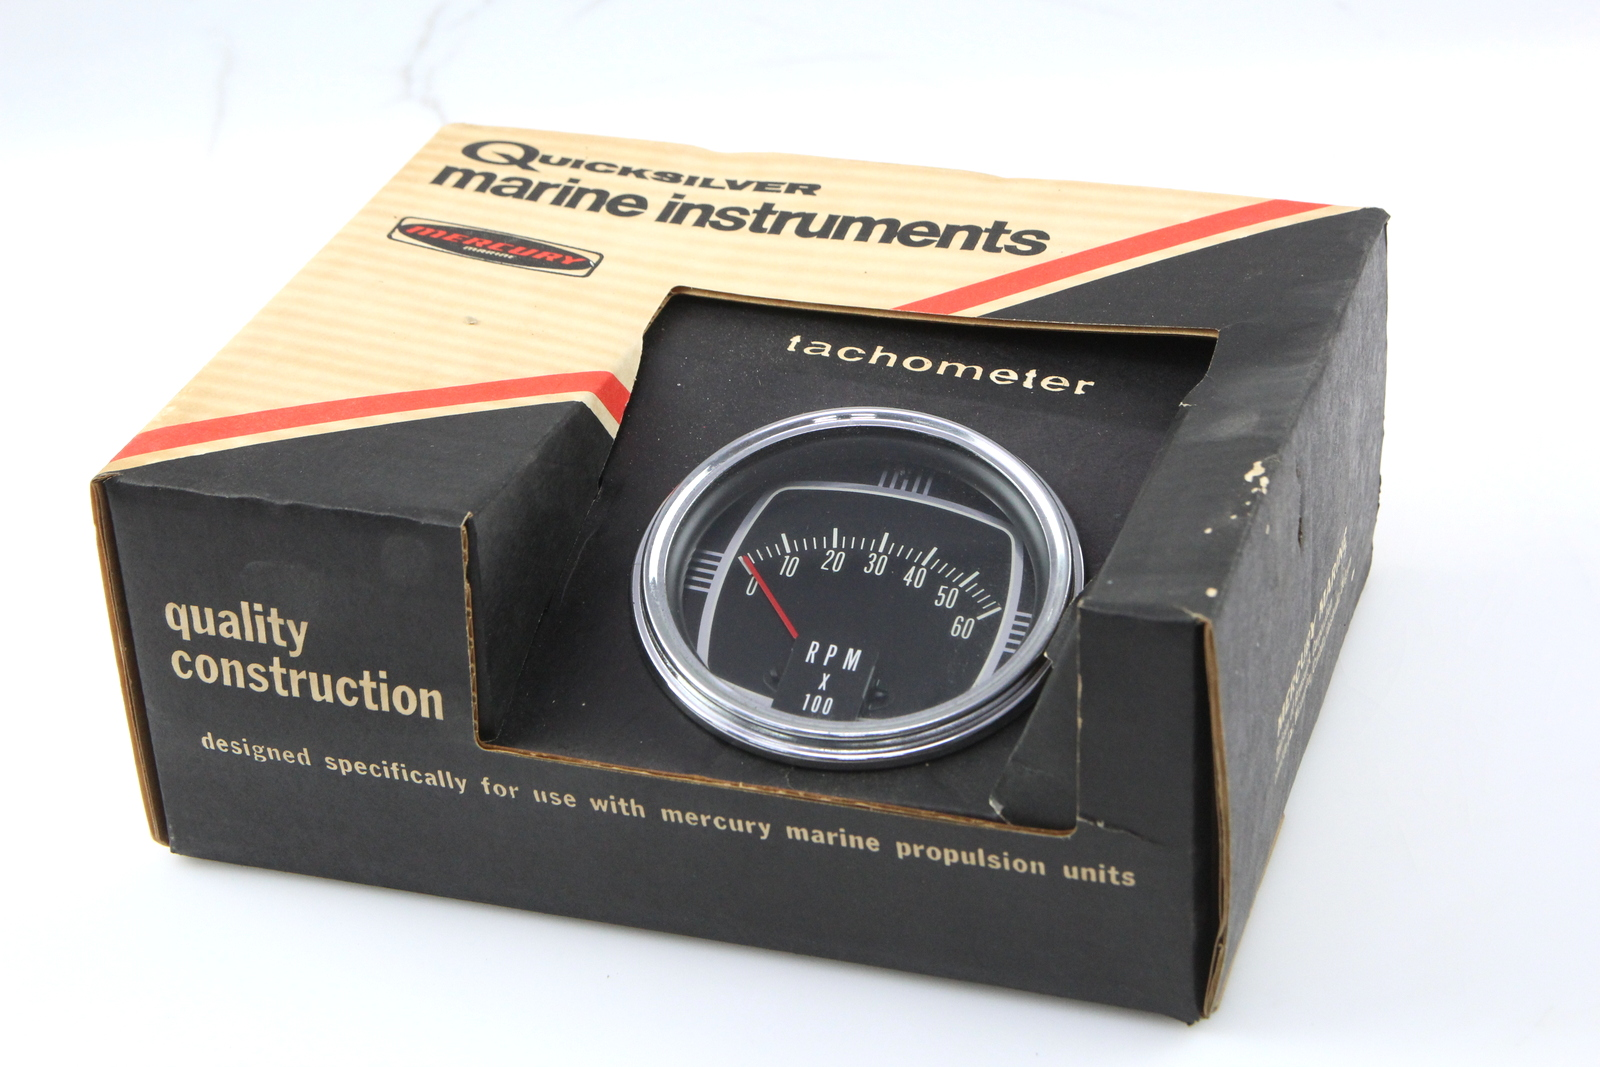 hight resolution of details about quicksilver mercury thunderbolt ignition tachometer rpm 0 60 65794 a2